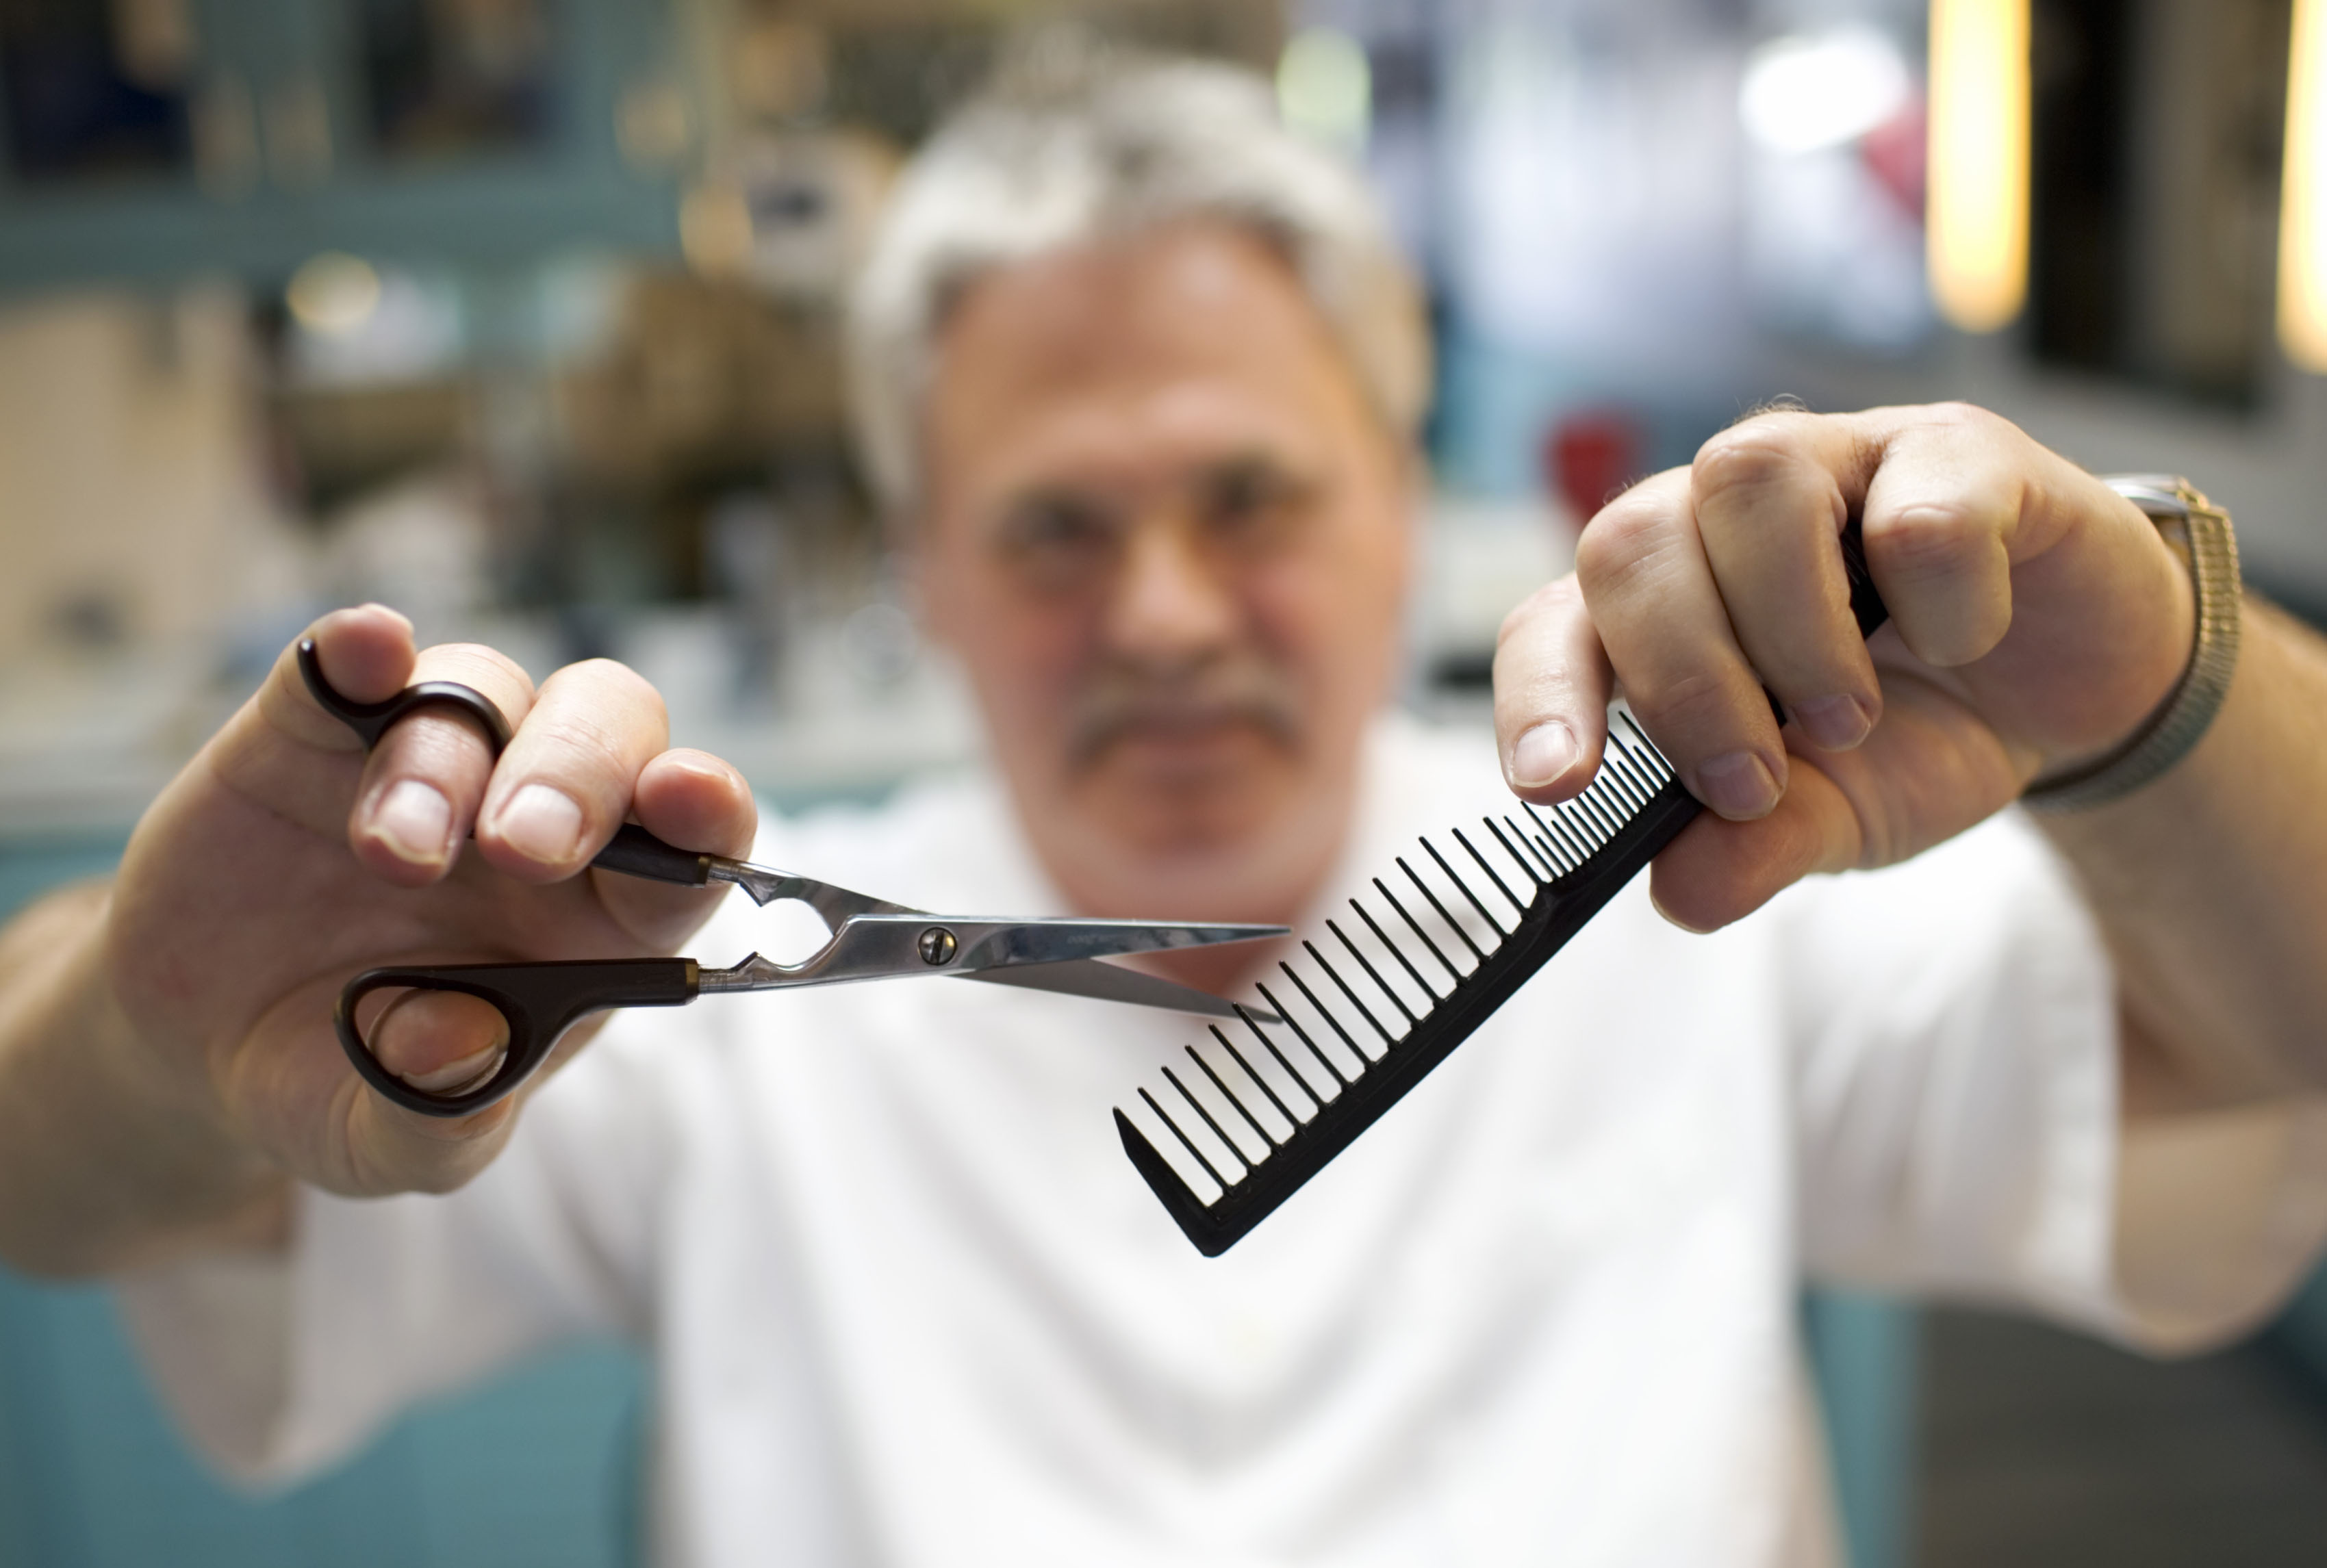 Barber Jobs Near Me : Storytelling: The 1959 flattop haircut that made all the difference ...